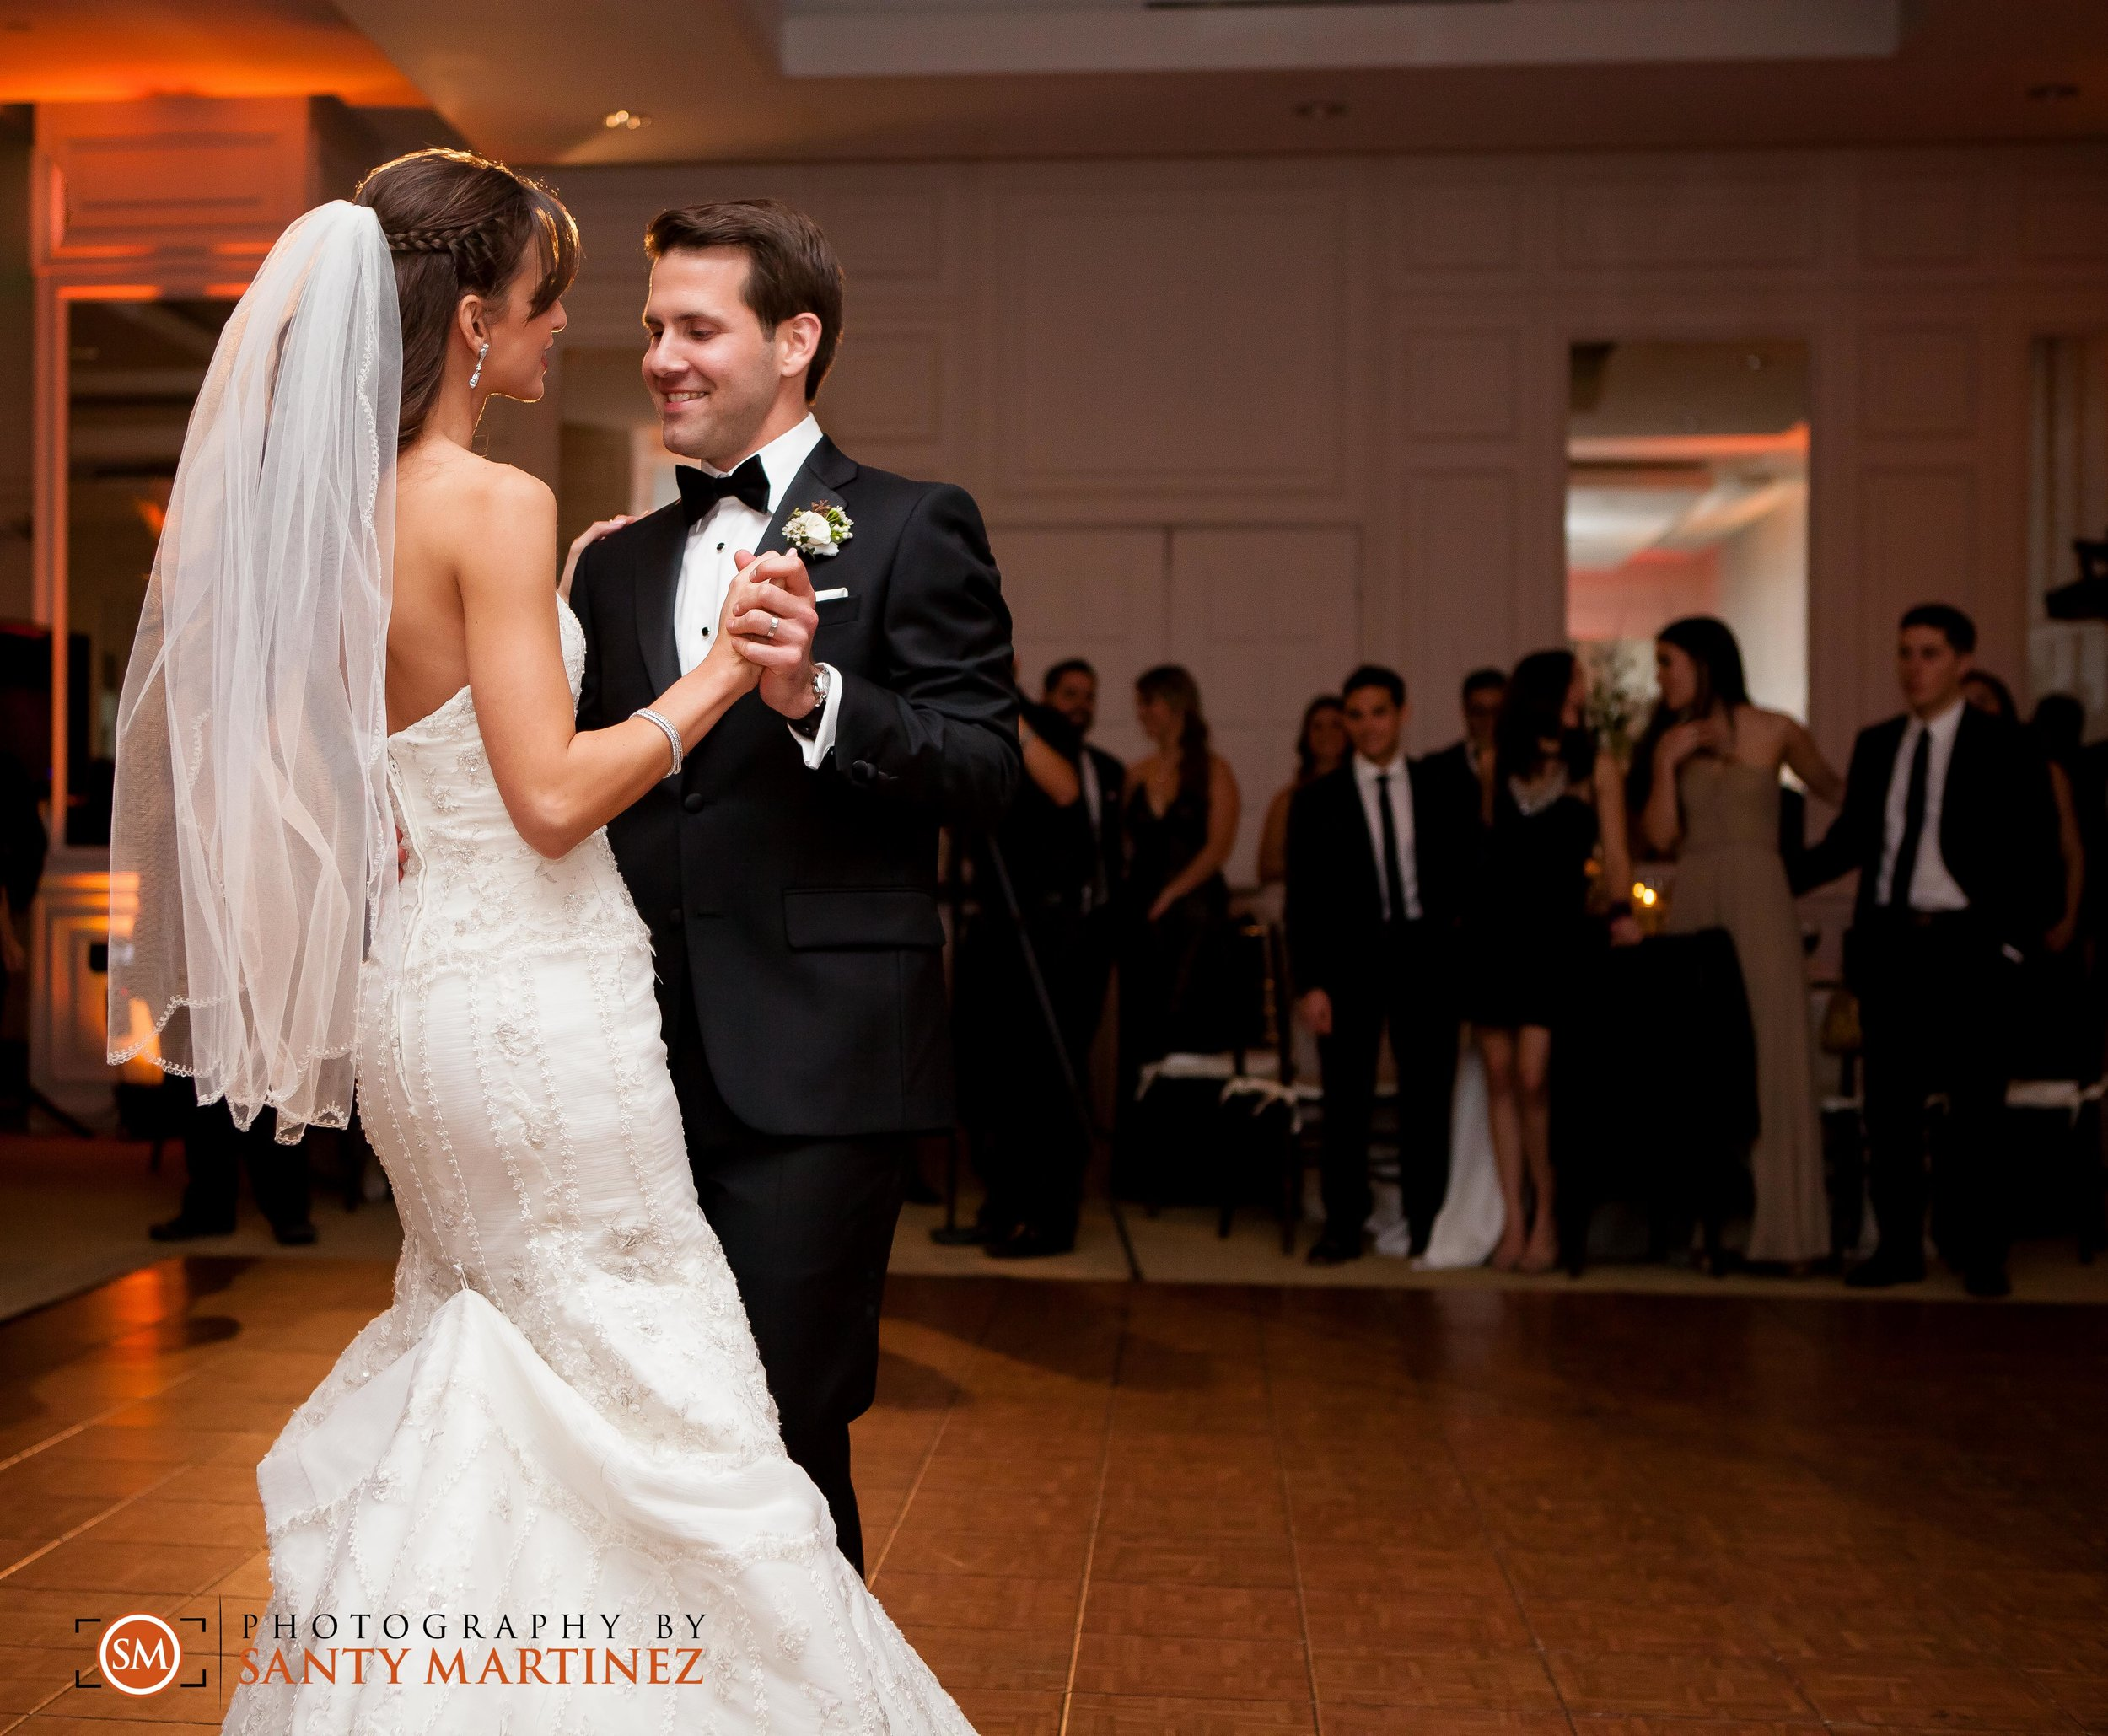 Miami Wedding Photographer - Santy Martinez -32-1.jpg